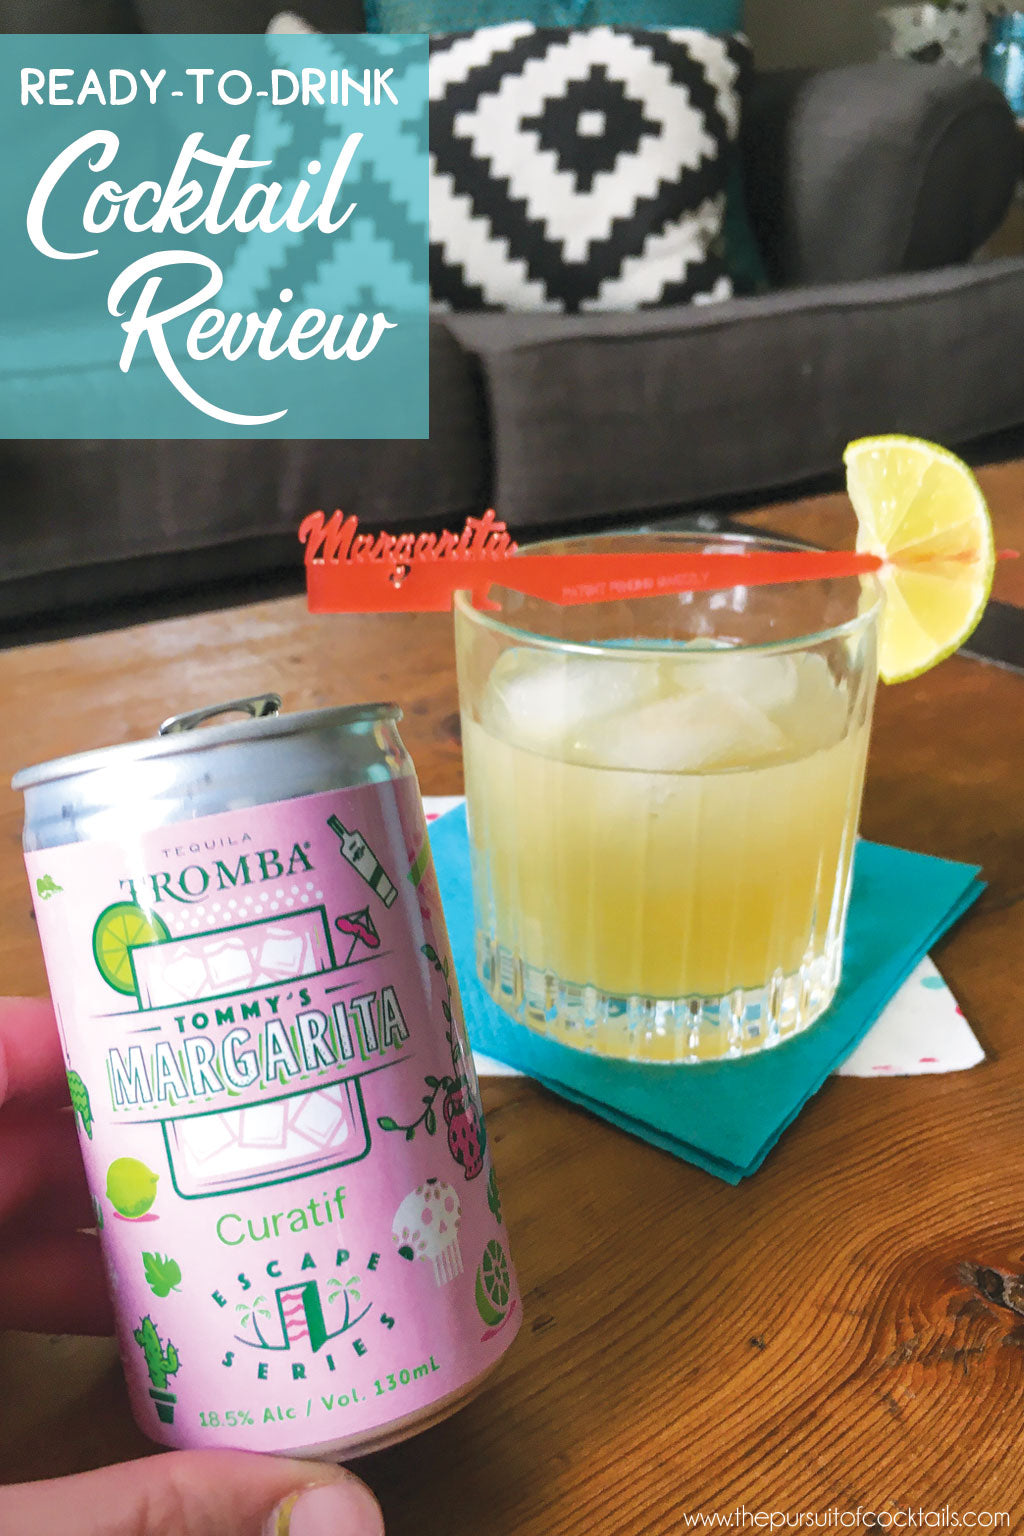 Curatif Tommy's Margarita canned cocktail review by The Pursuit of Cocktails